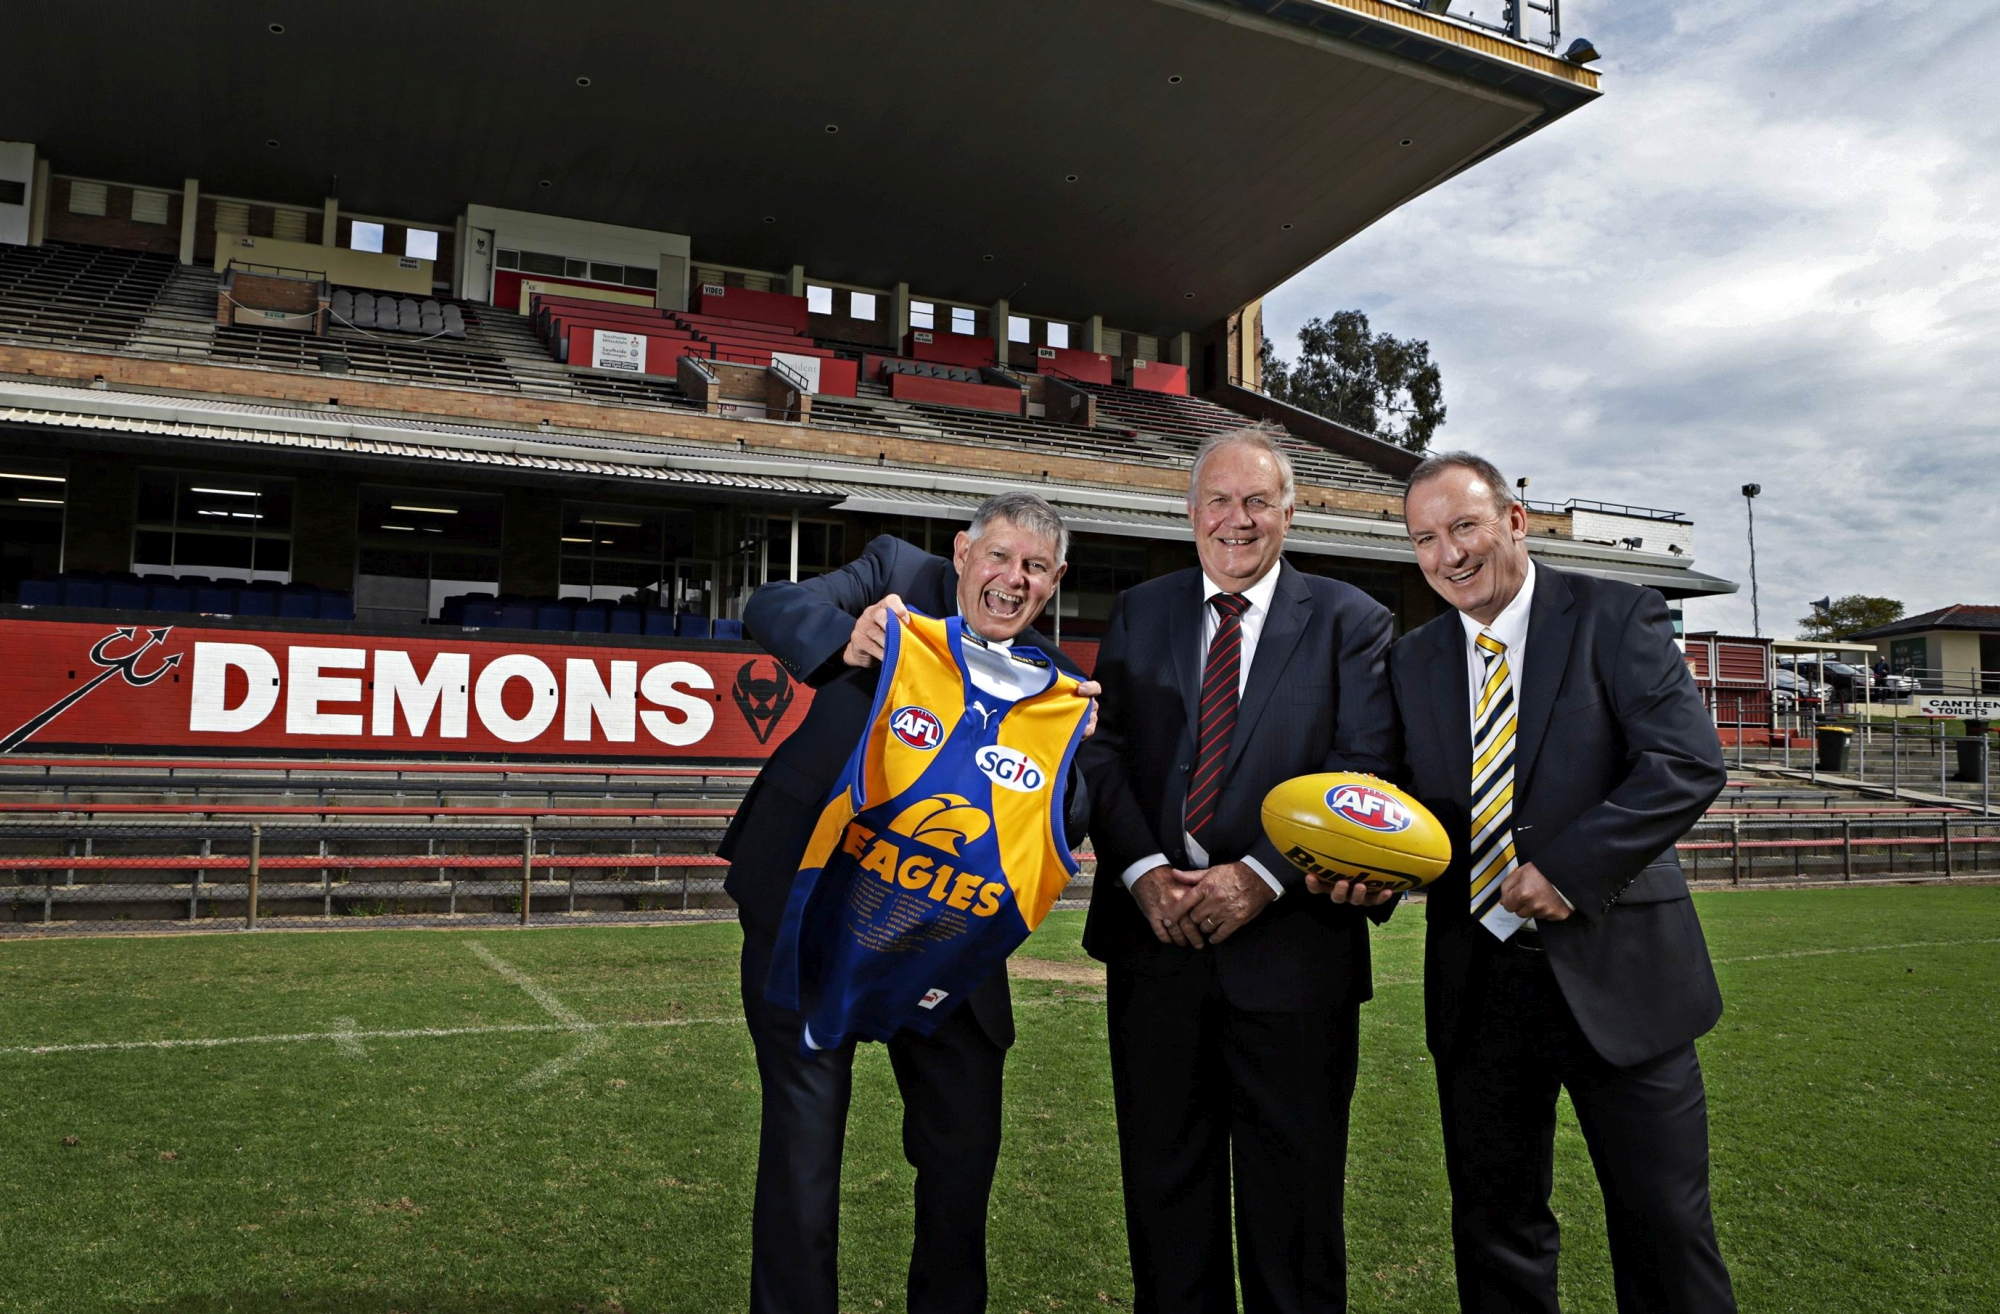 Victoria Park Mayor Trevor Vaughn, Perth Demons president Vince Pendal and West Coast CEO Trevor Nisbett. Picture: Elle Borgward d425665